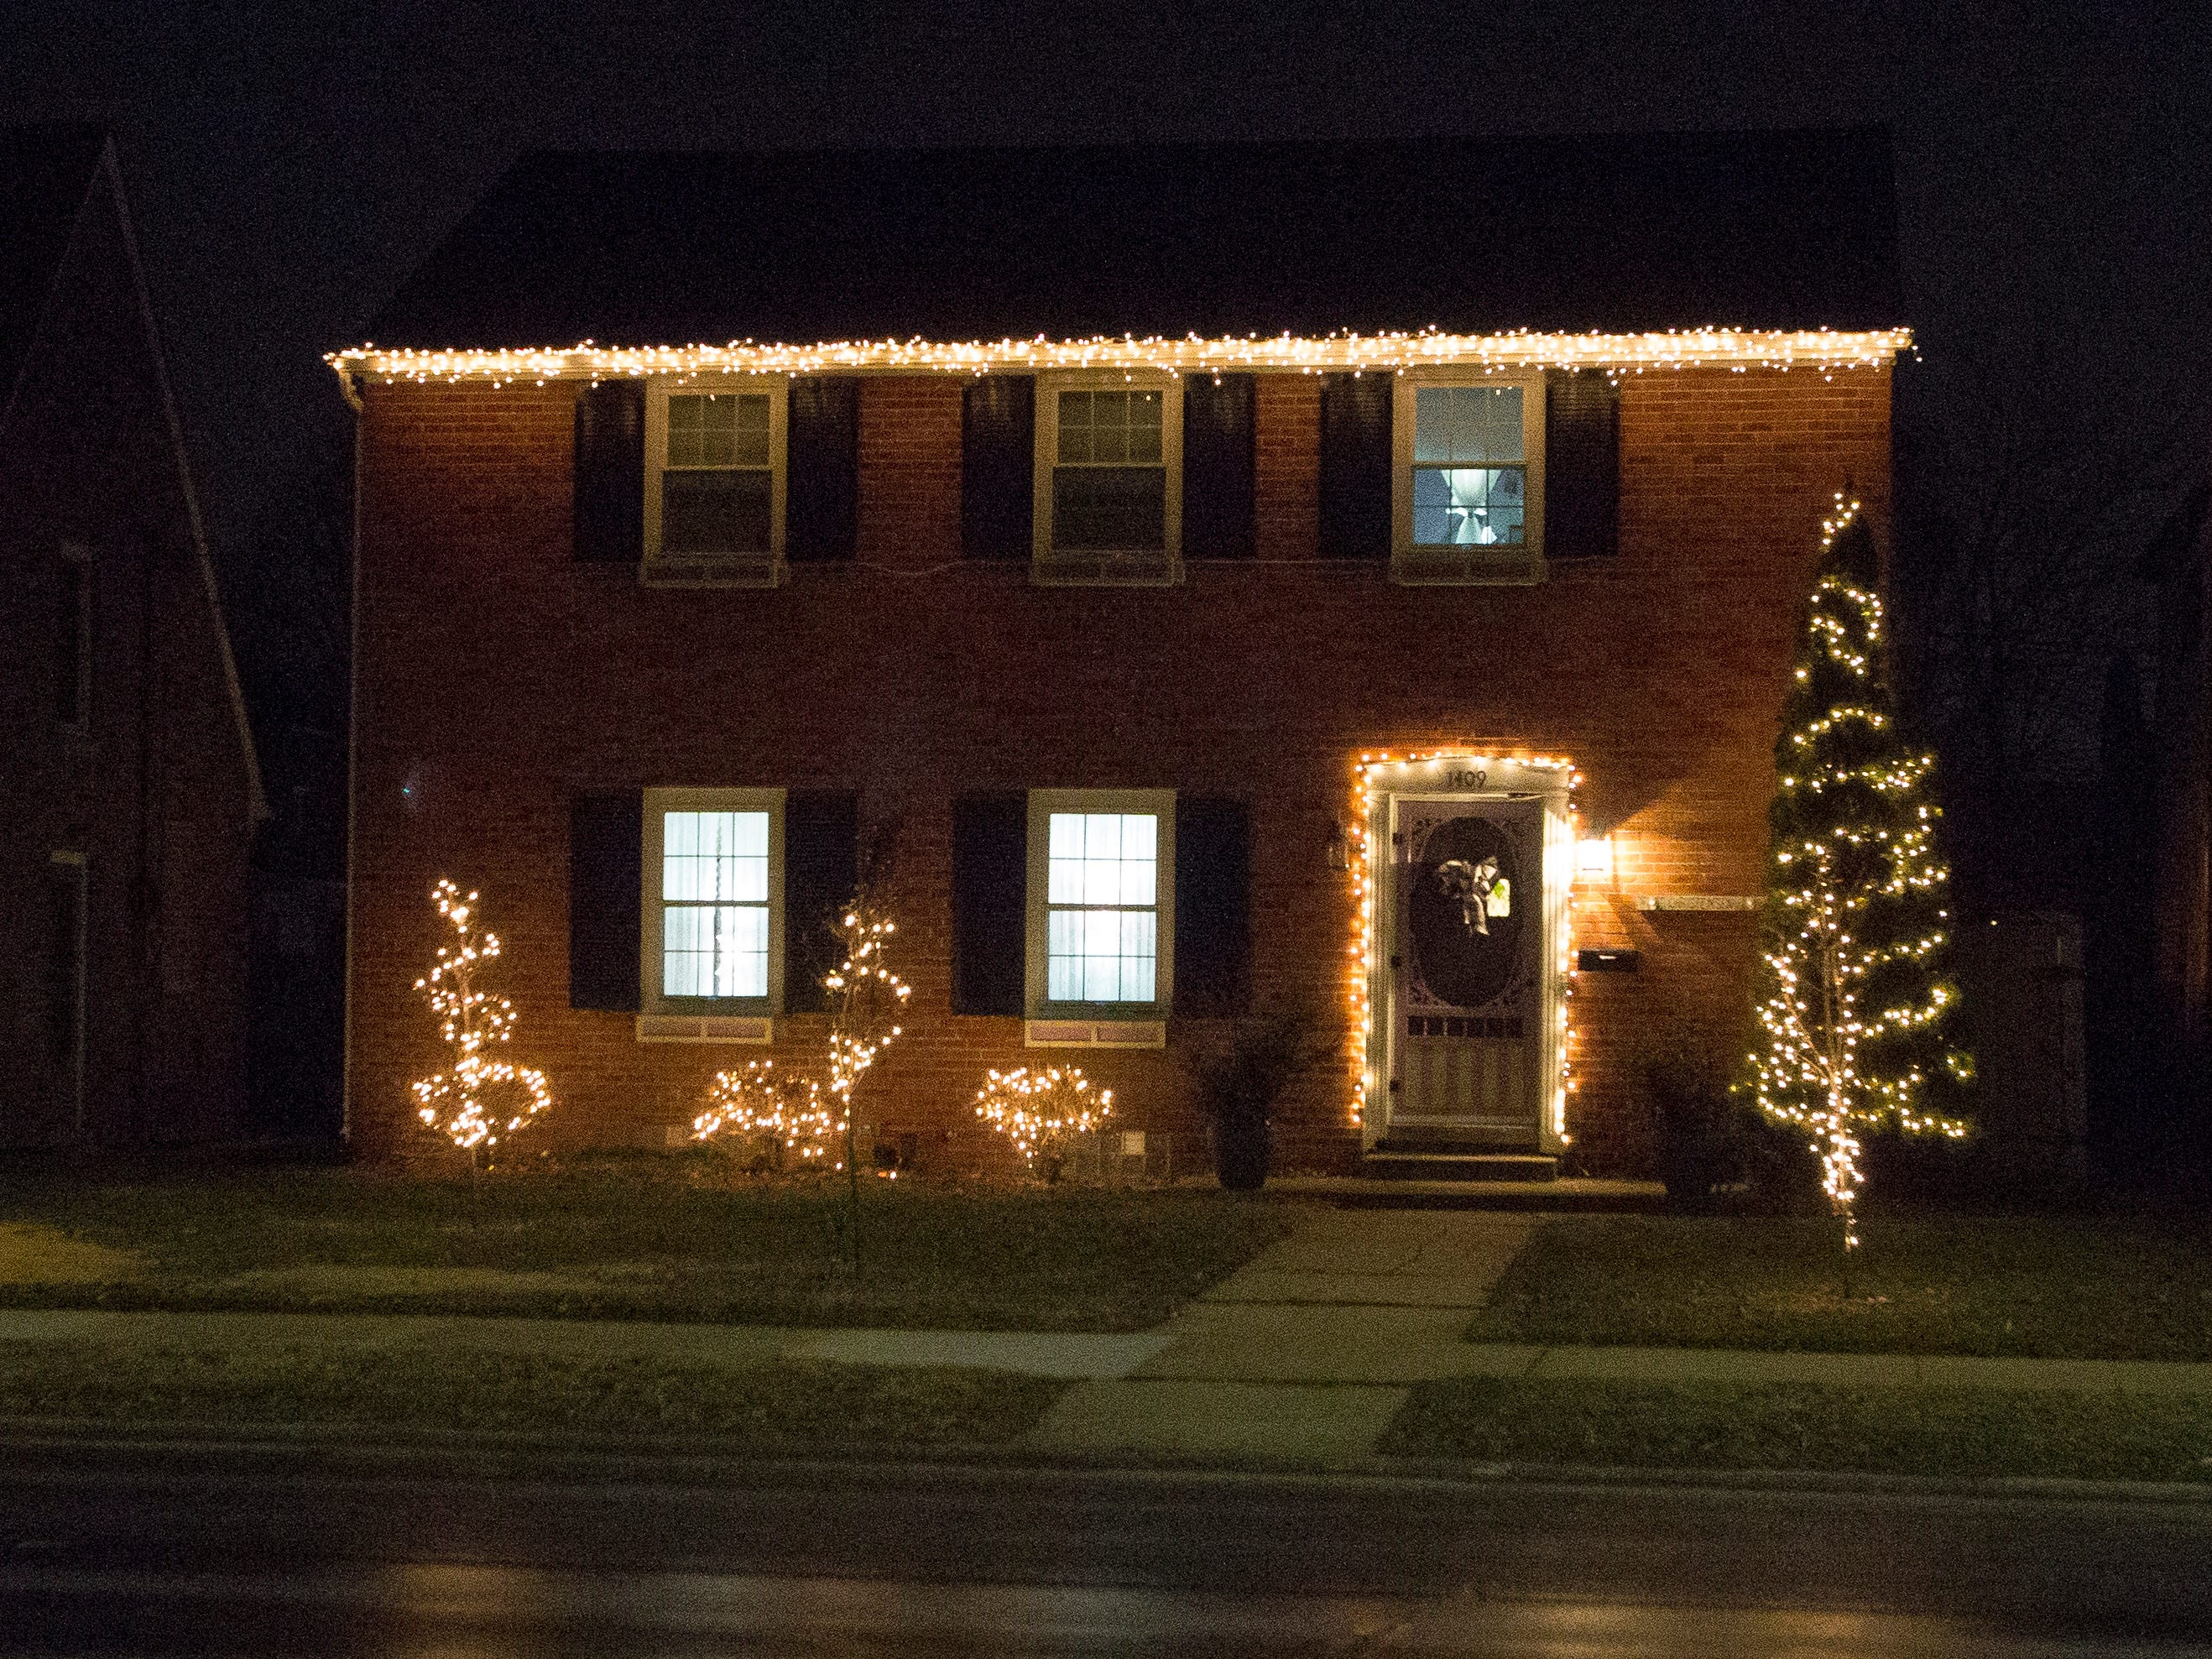 A decorated home along North Avenue, Wednesday, December 19, 2018, in Sheboygan, Wis.